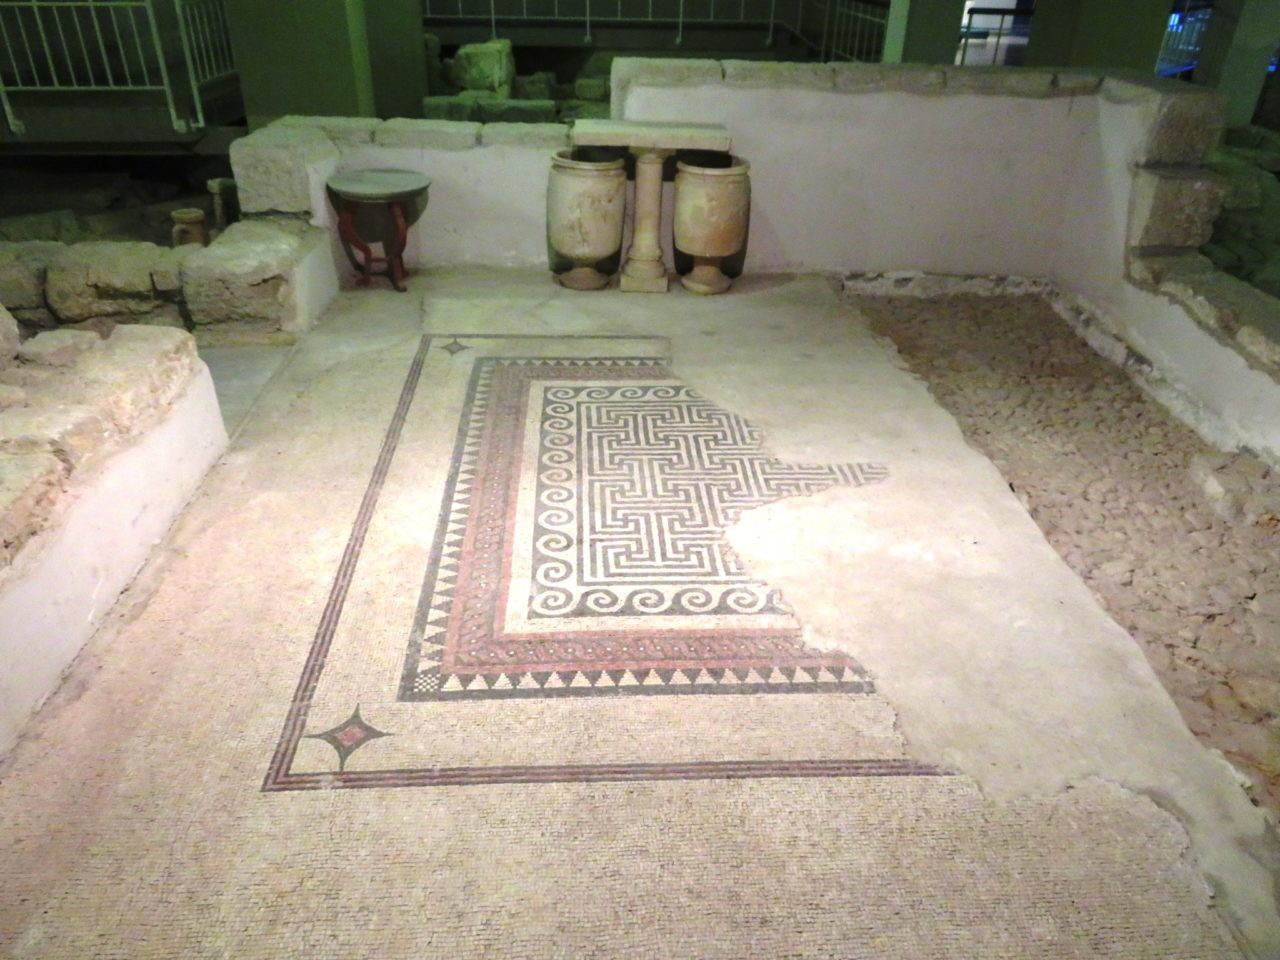 The joys of walking Jerusalem - a Herodian Mansion floor from 2,000 years ago